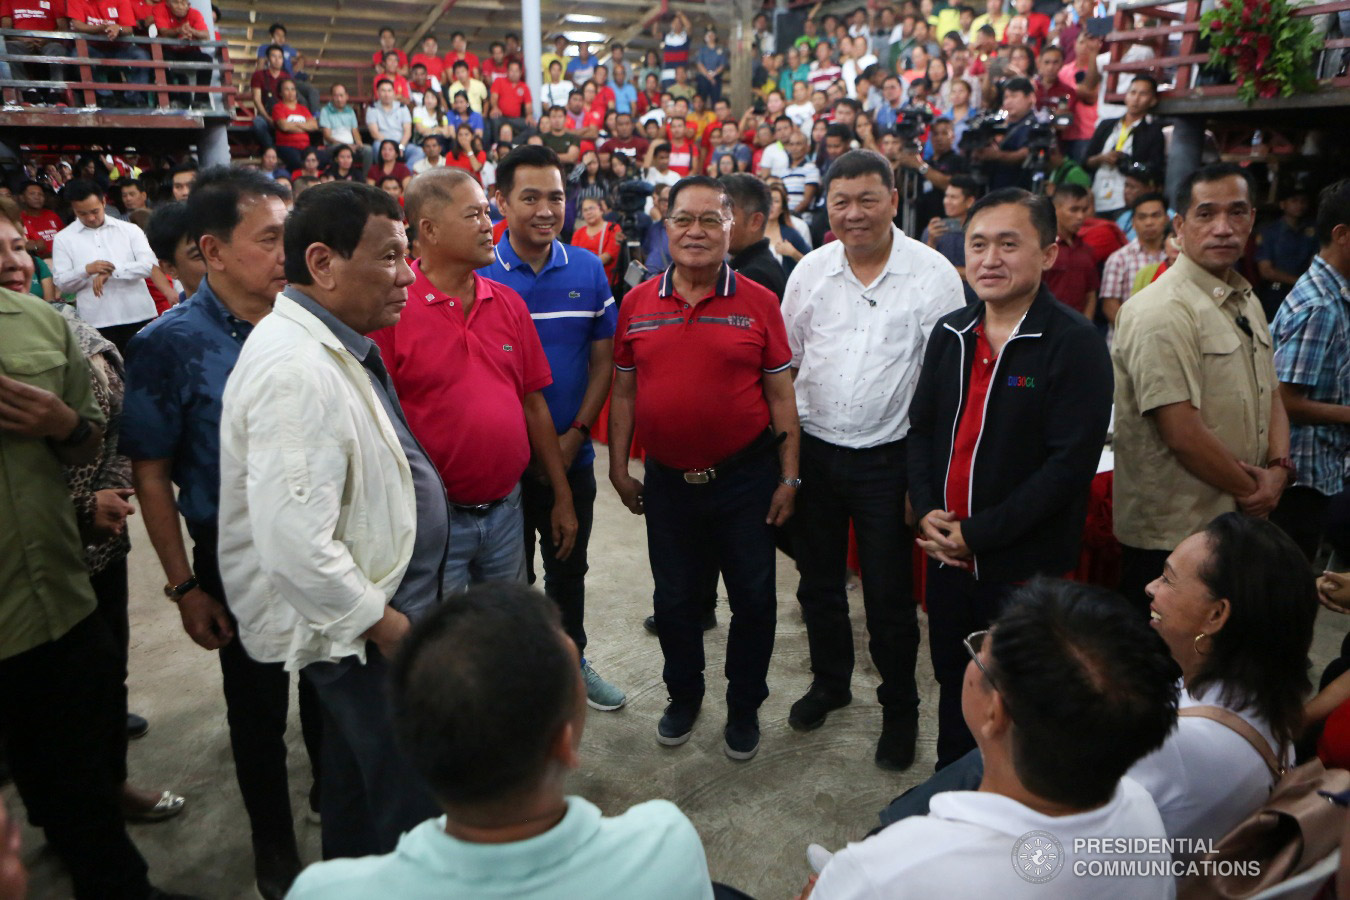 """President Rodrigo Roa Duterte gets into a huddle with Masbate Governor Antonio Kho and other invited guests during the Governor's birthday celebration at the Kalasangan Farm in Cataingan, Masbate on January 9, 2019. Among the invited guests were Former Special Assistant to the President Christopher Lawrence """"Bong"""" Go. ALBERT ALCAIN/PRESIDENTIAL PHOTO"""